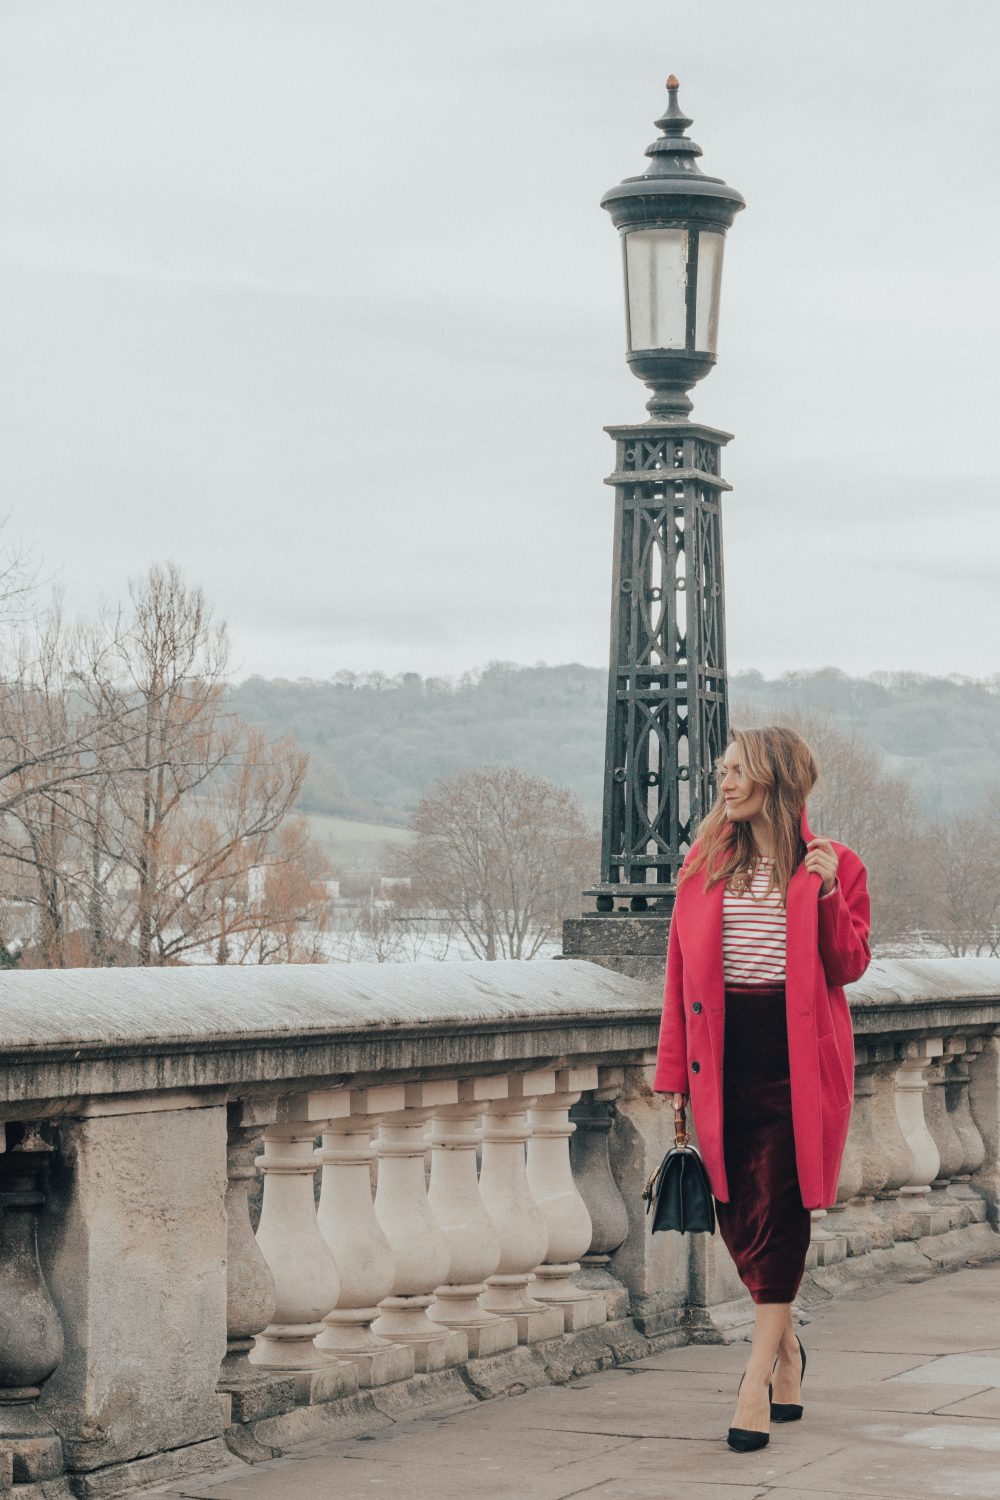 Whitney's Wonderland UK Top Luxury Travel Blogger shares her staycation experience in Bath booking her whole journey through Expedia